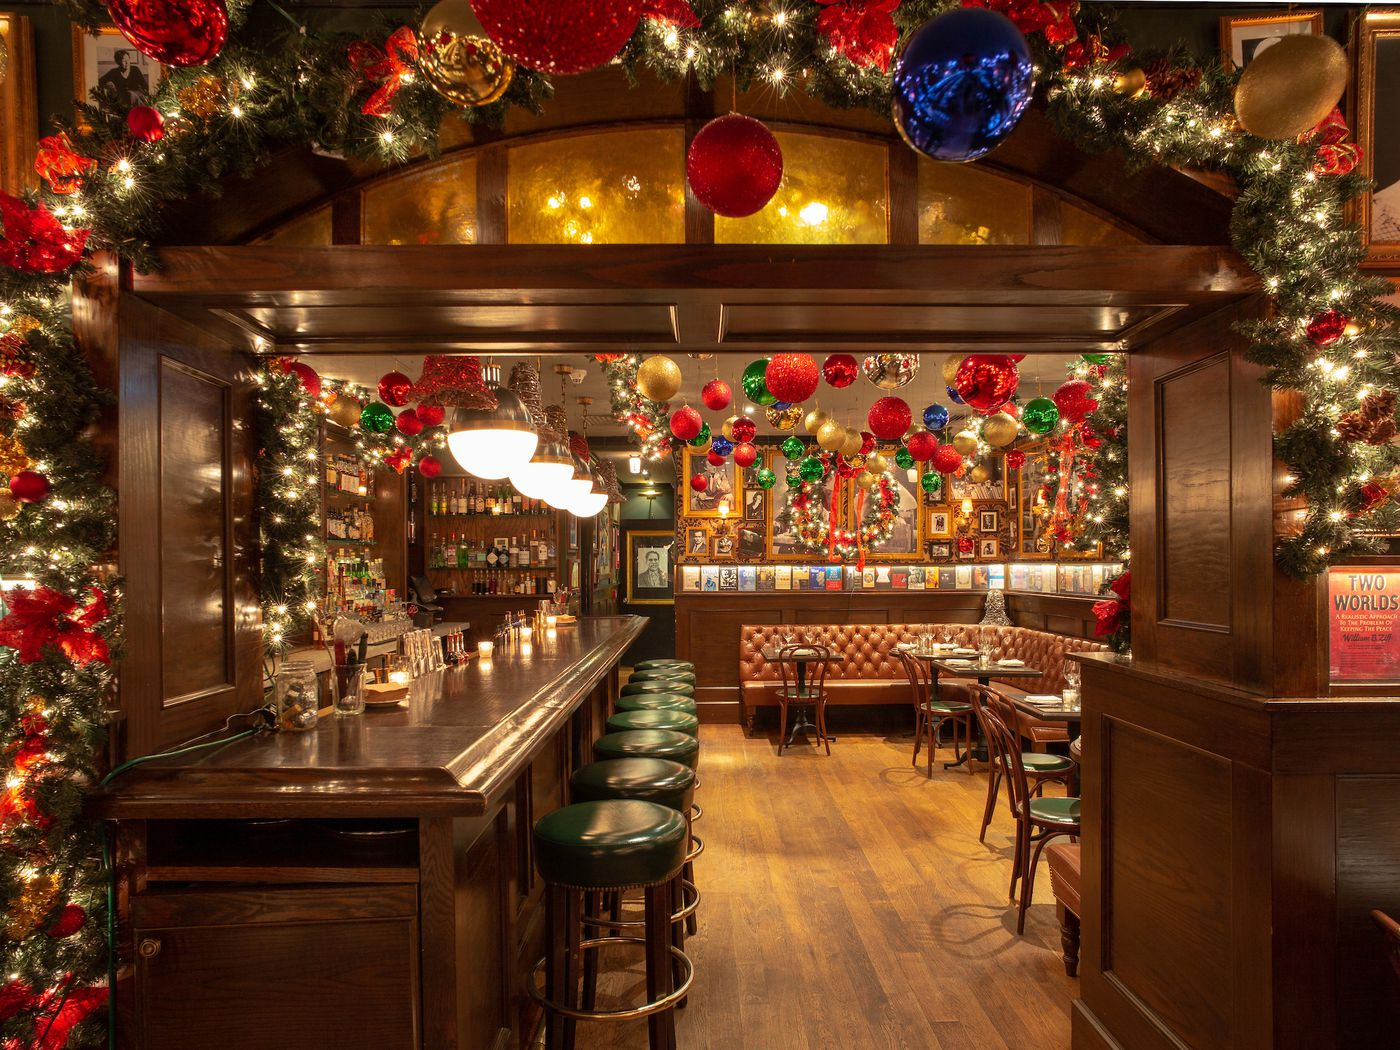 Tavern On The Green 2020 Decorations Gor Christmas 23 NYC Restaurants With Holiday Decorations   Eater NY